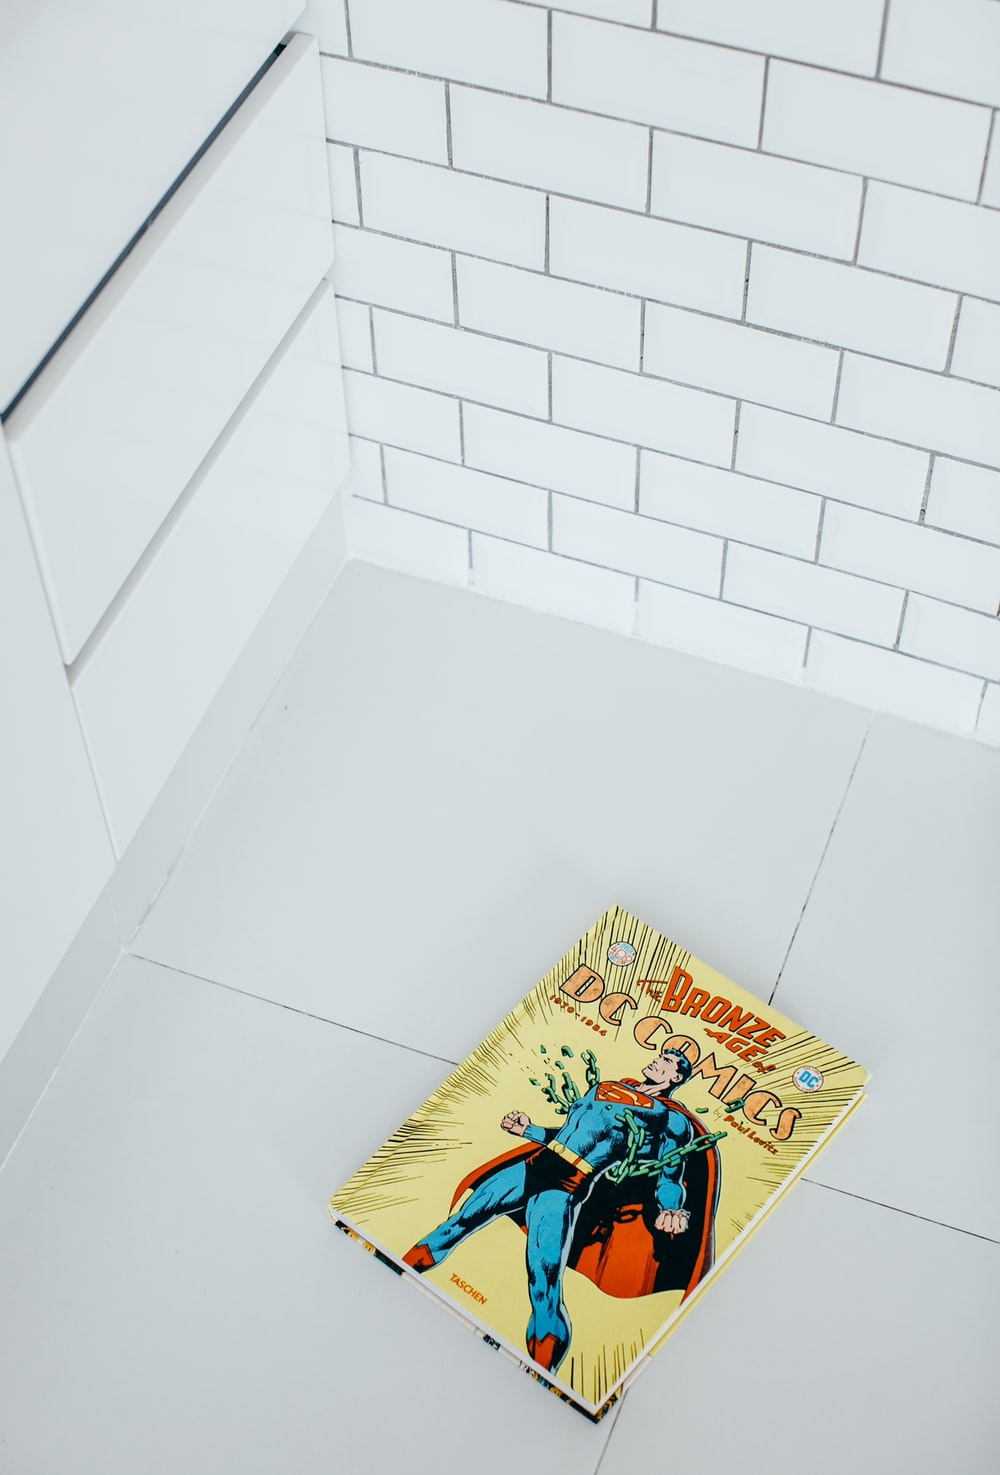 yellow and blue book on white ceramic tile